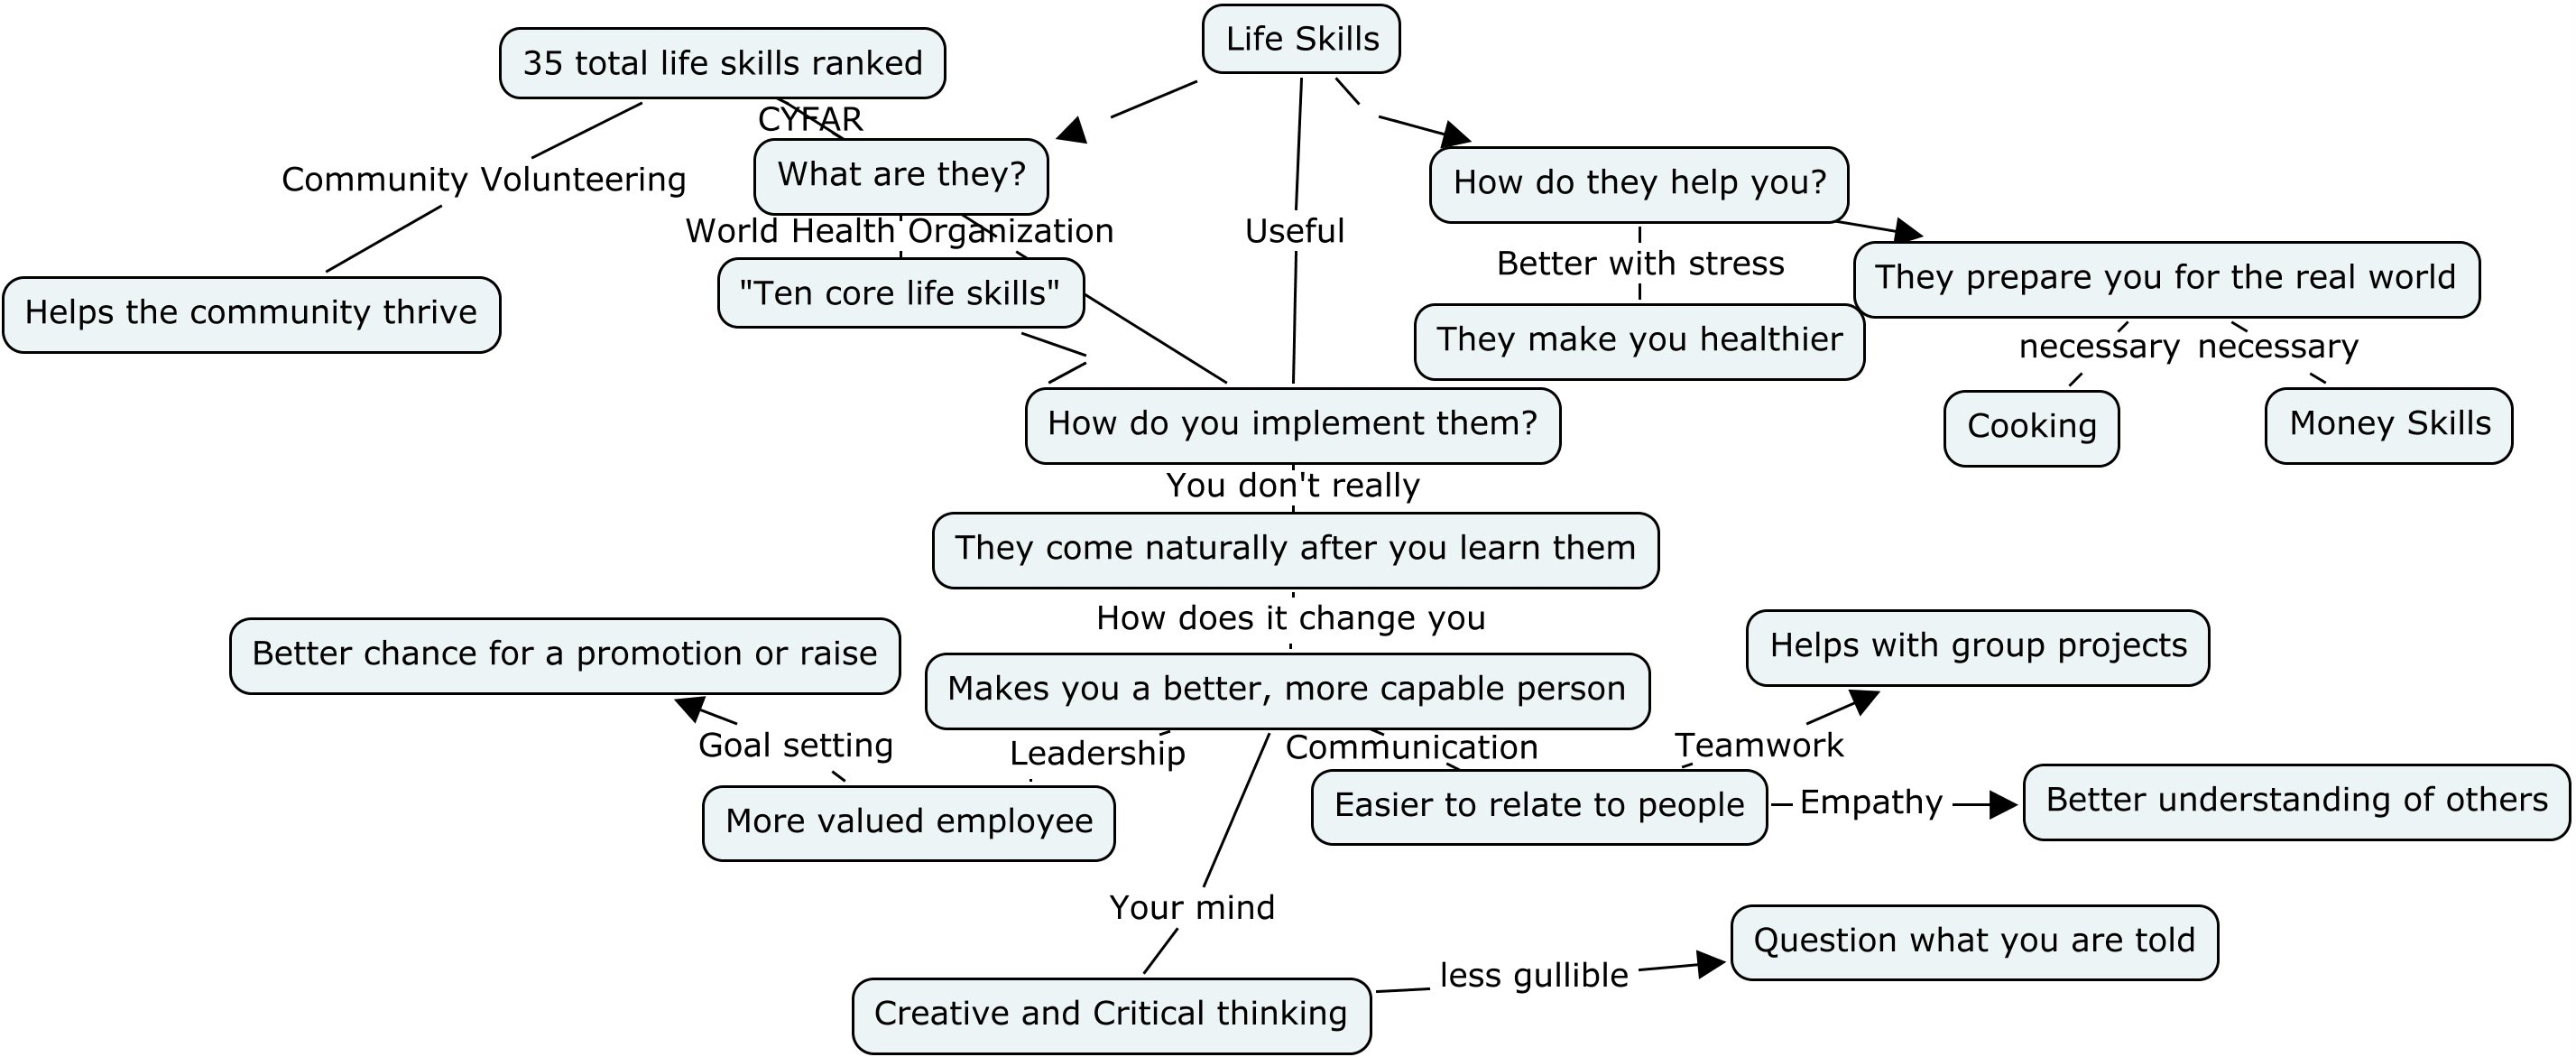 Concept Map for Life Skills Education   schmidtr